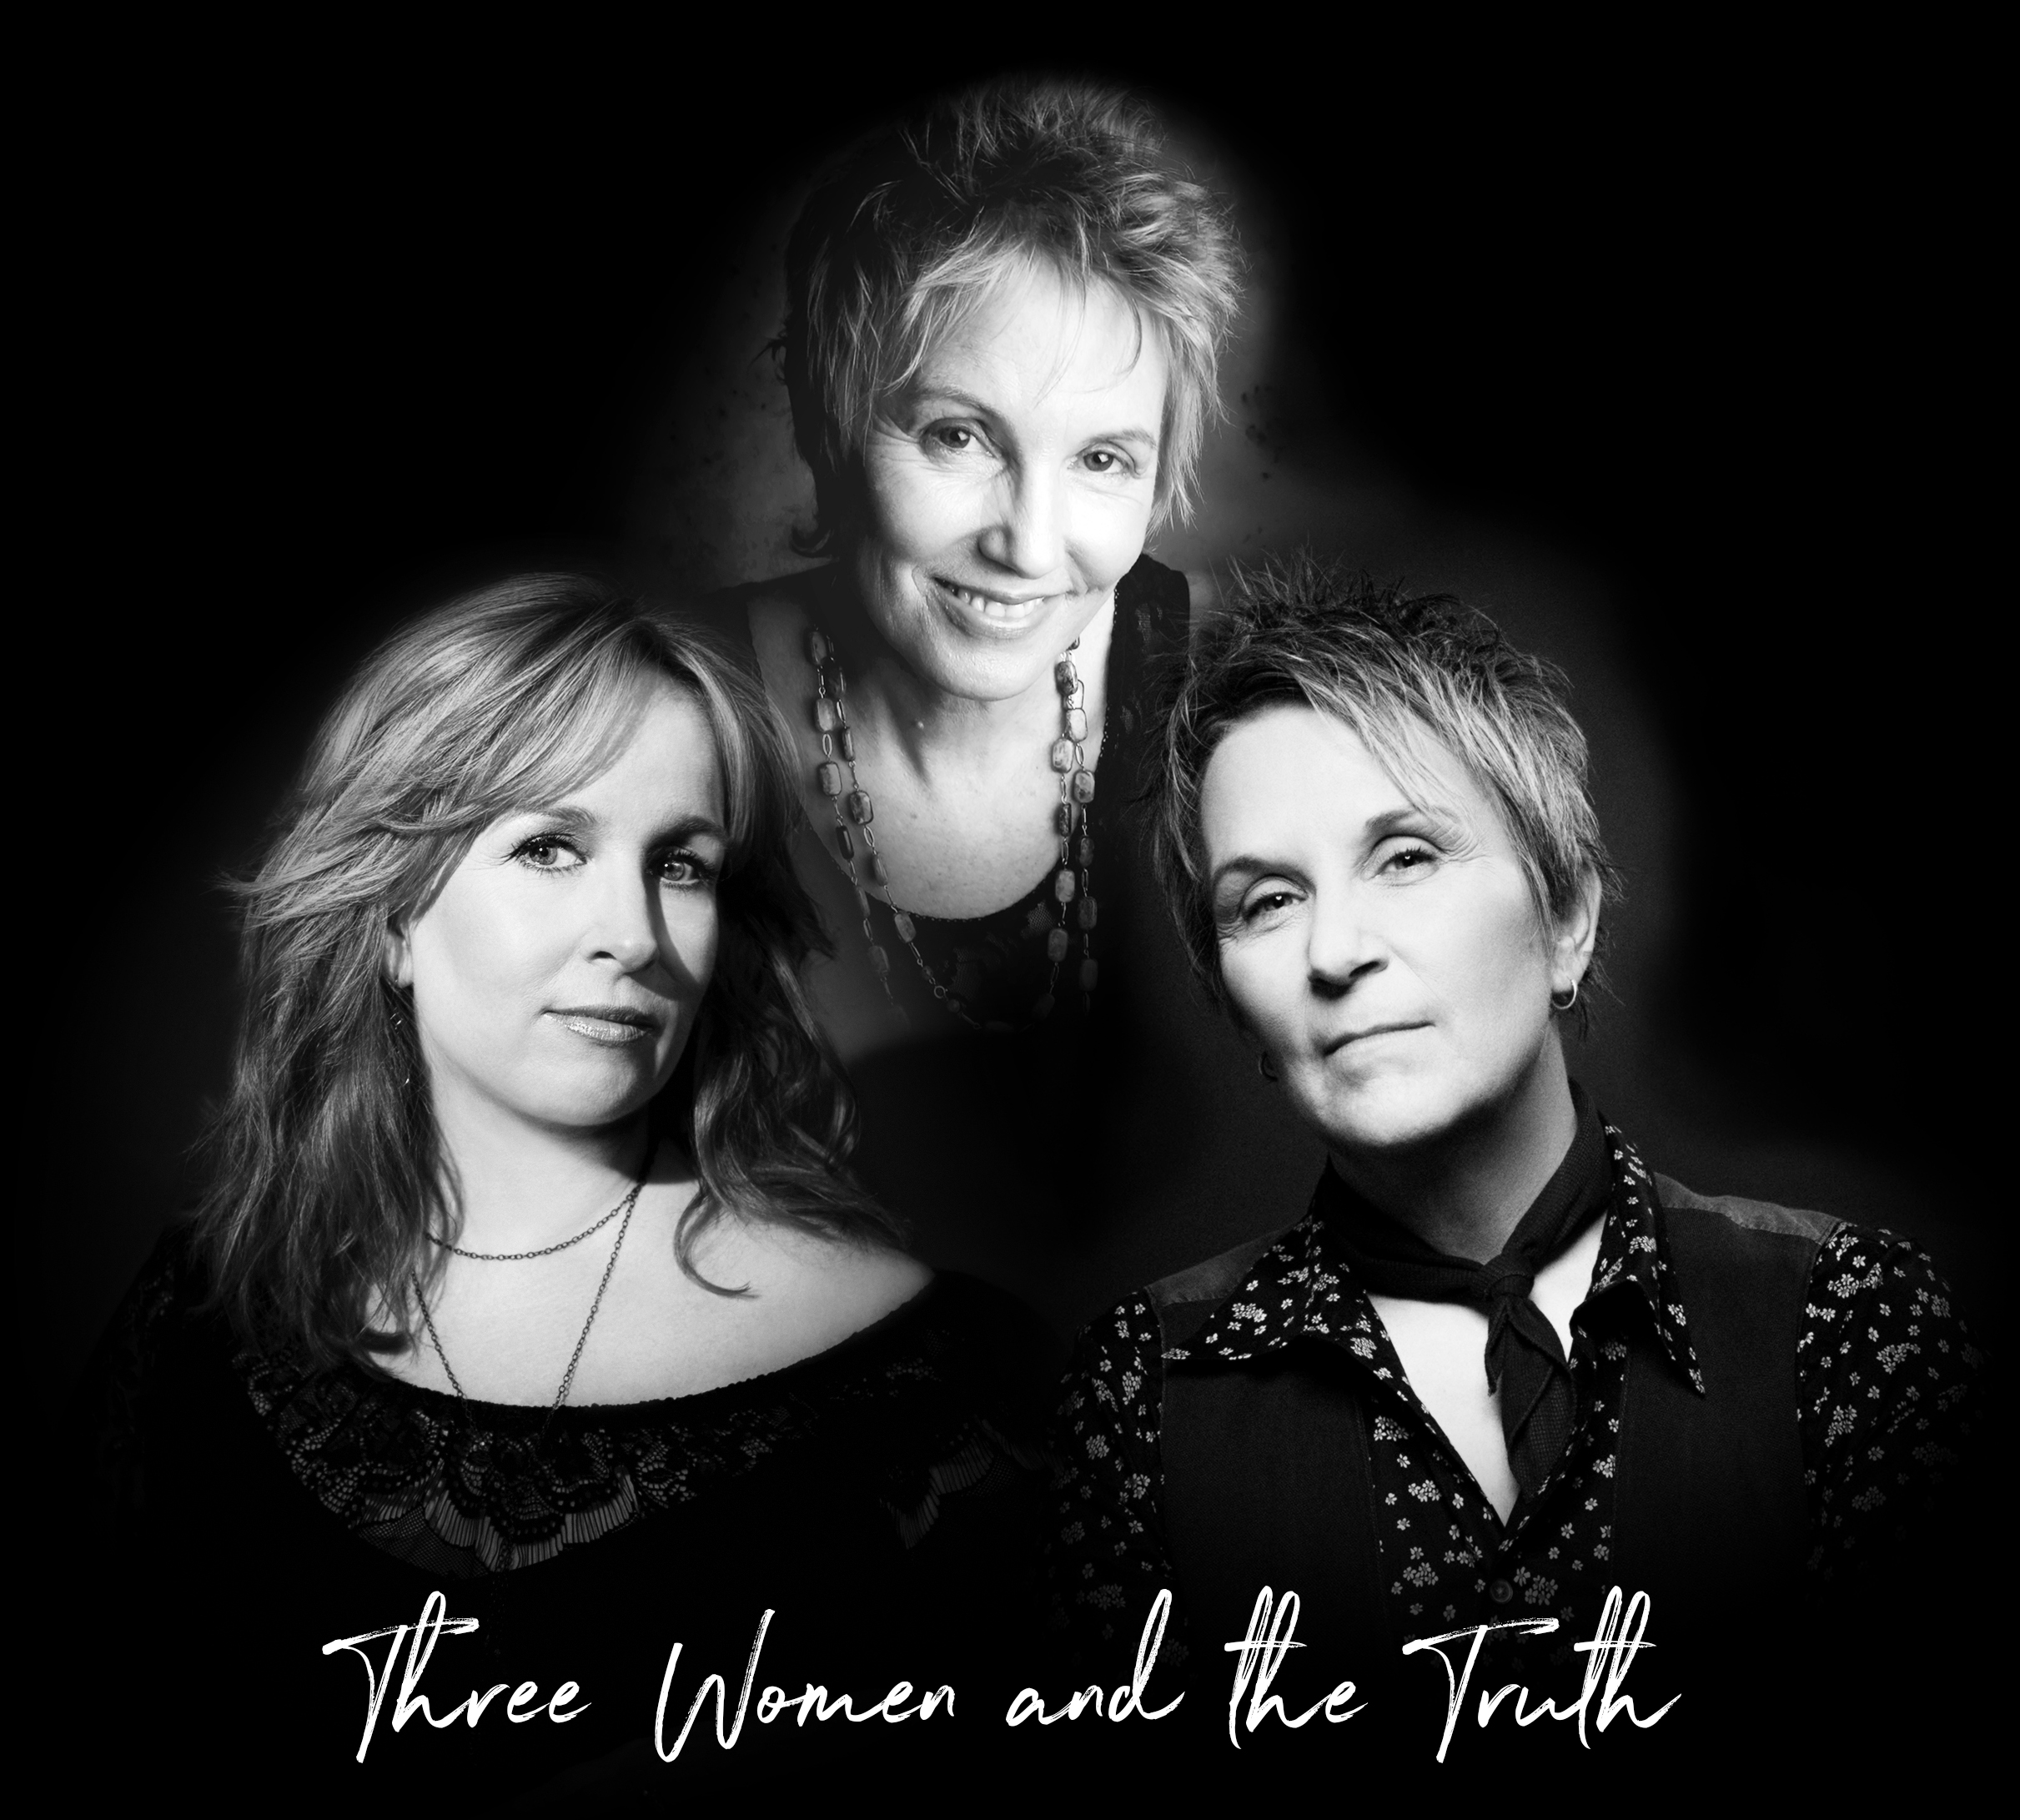 Picture of Three Women & the Truth band